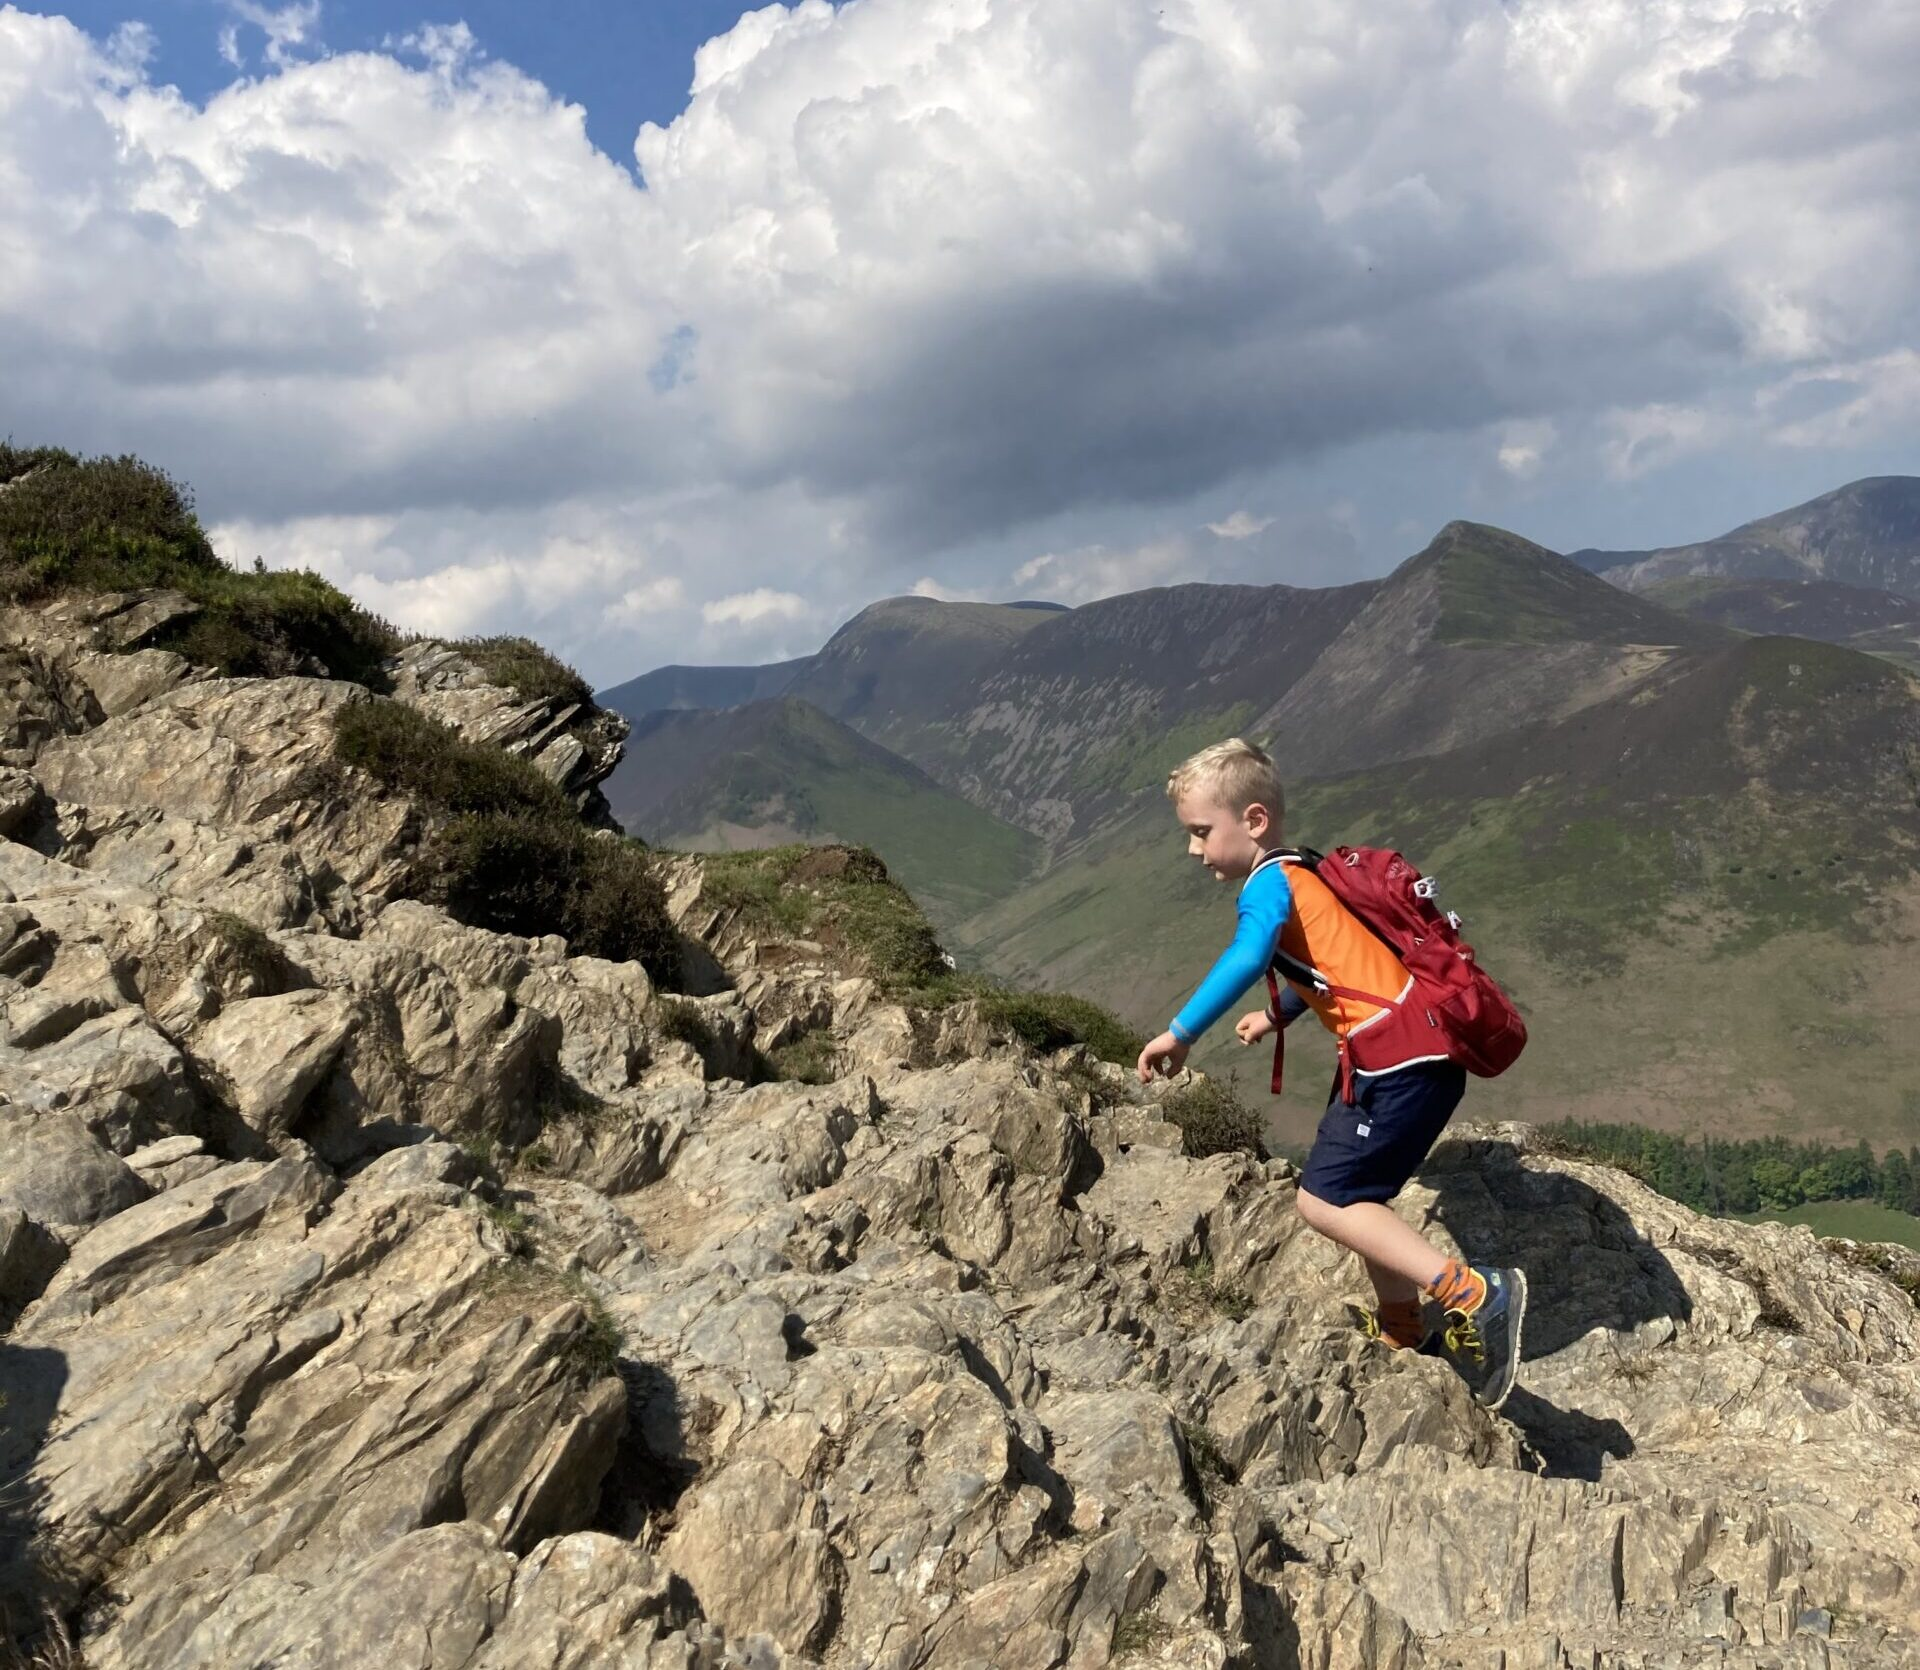 What's the best first mountain for kids?